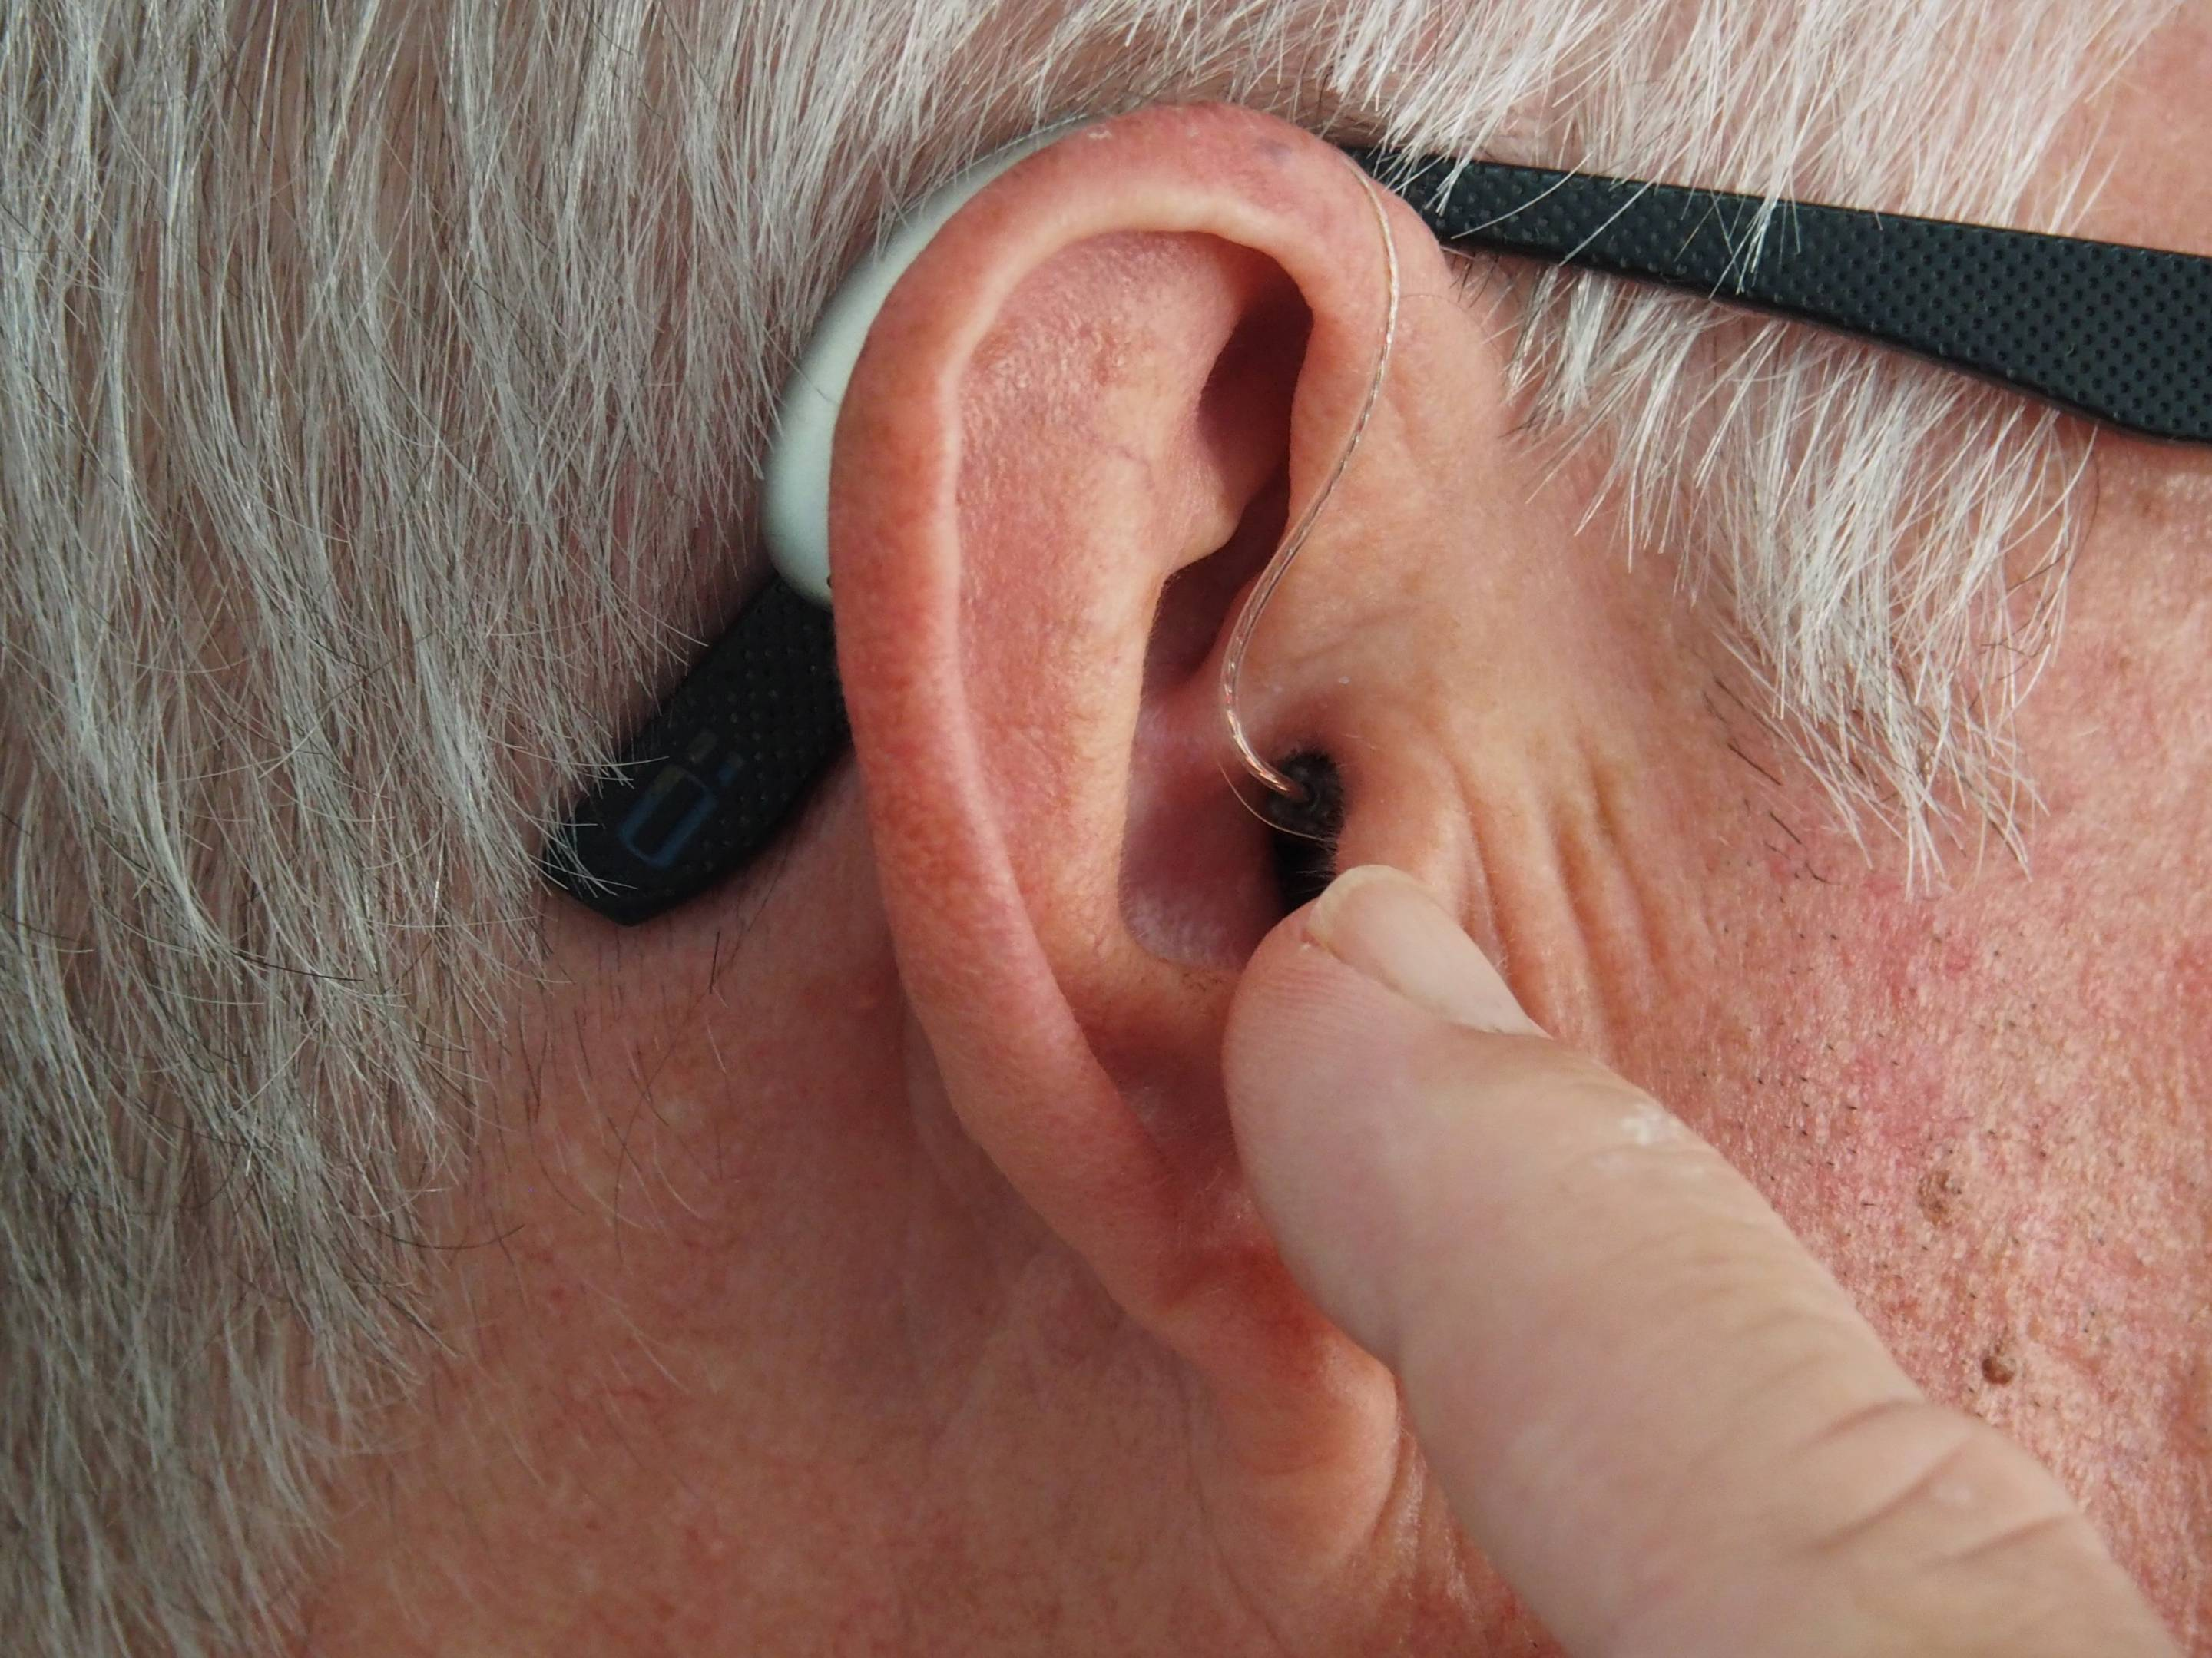 Maintaining Your Hearing Aid